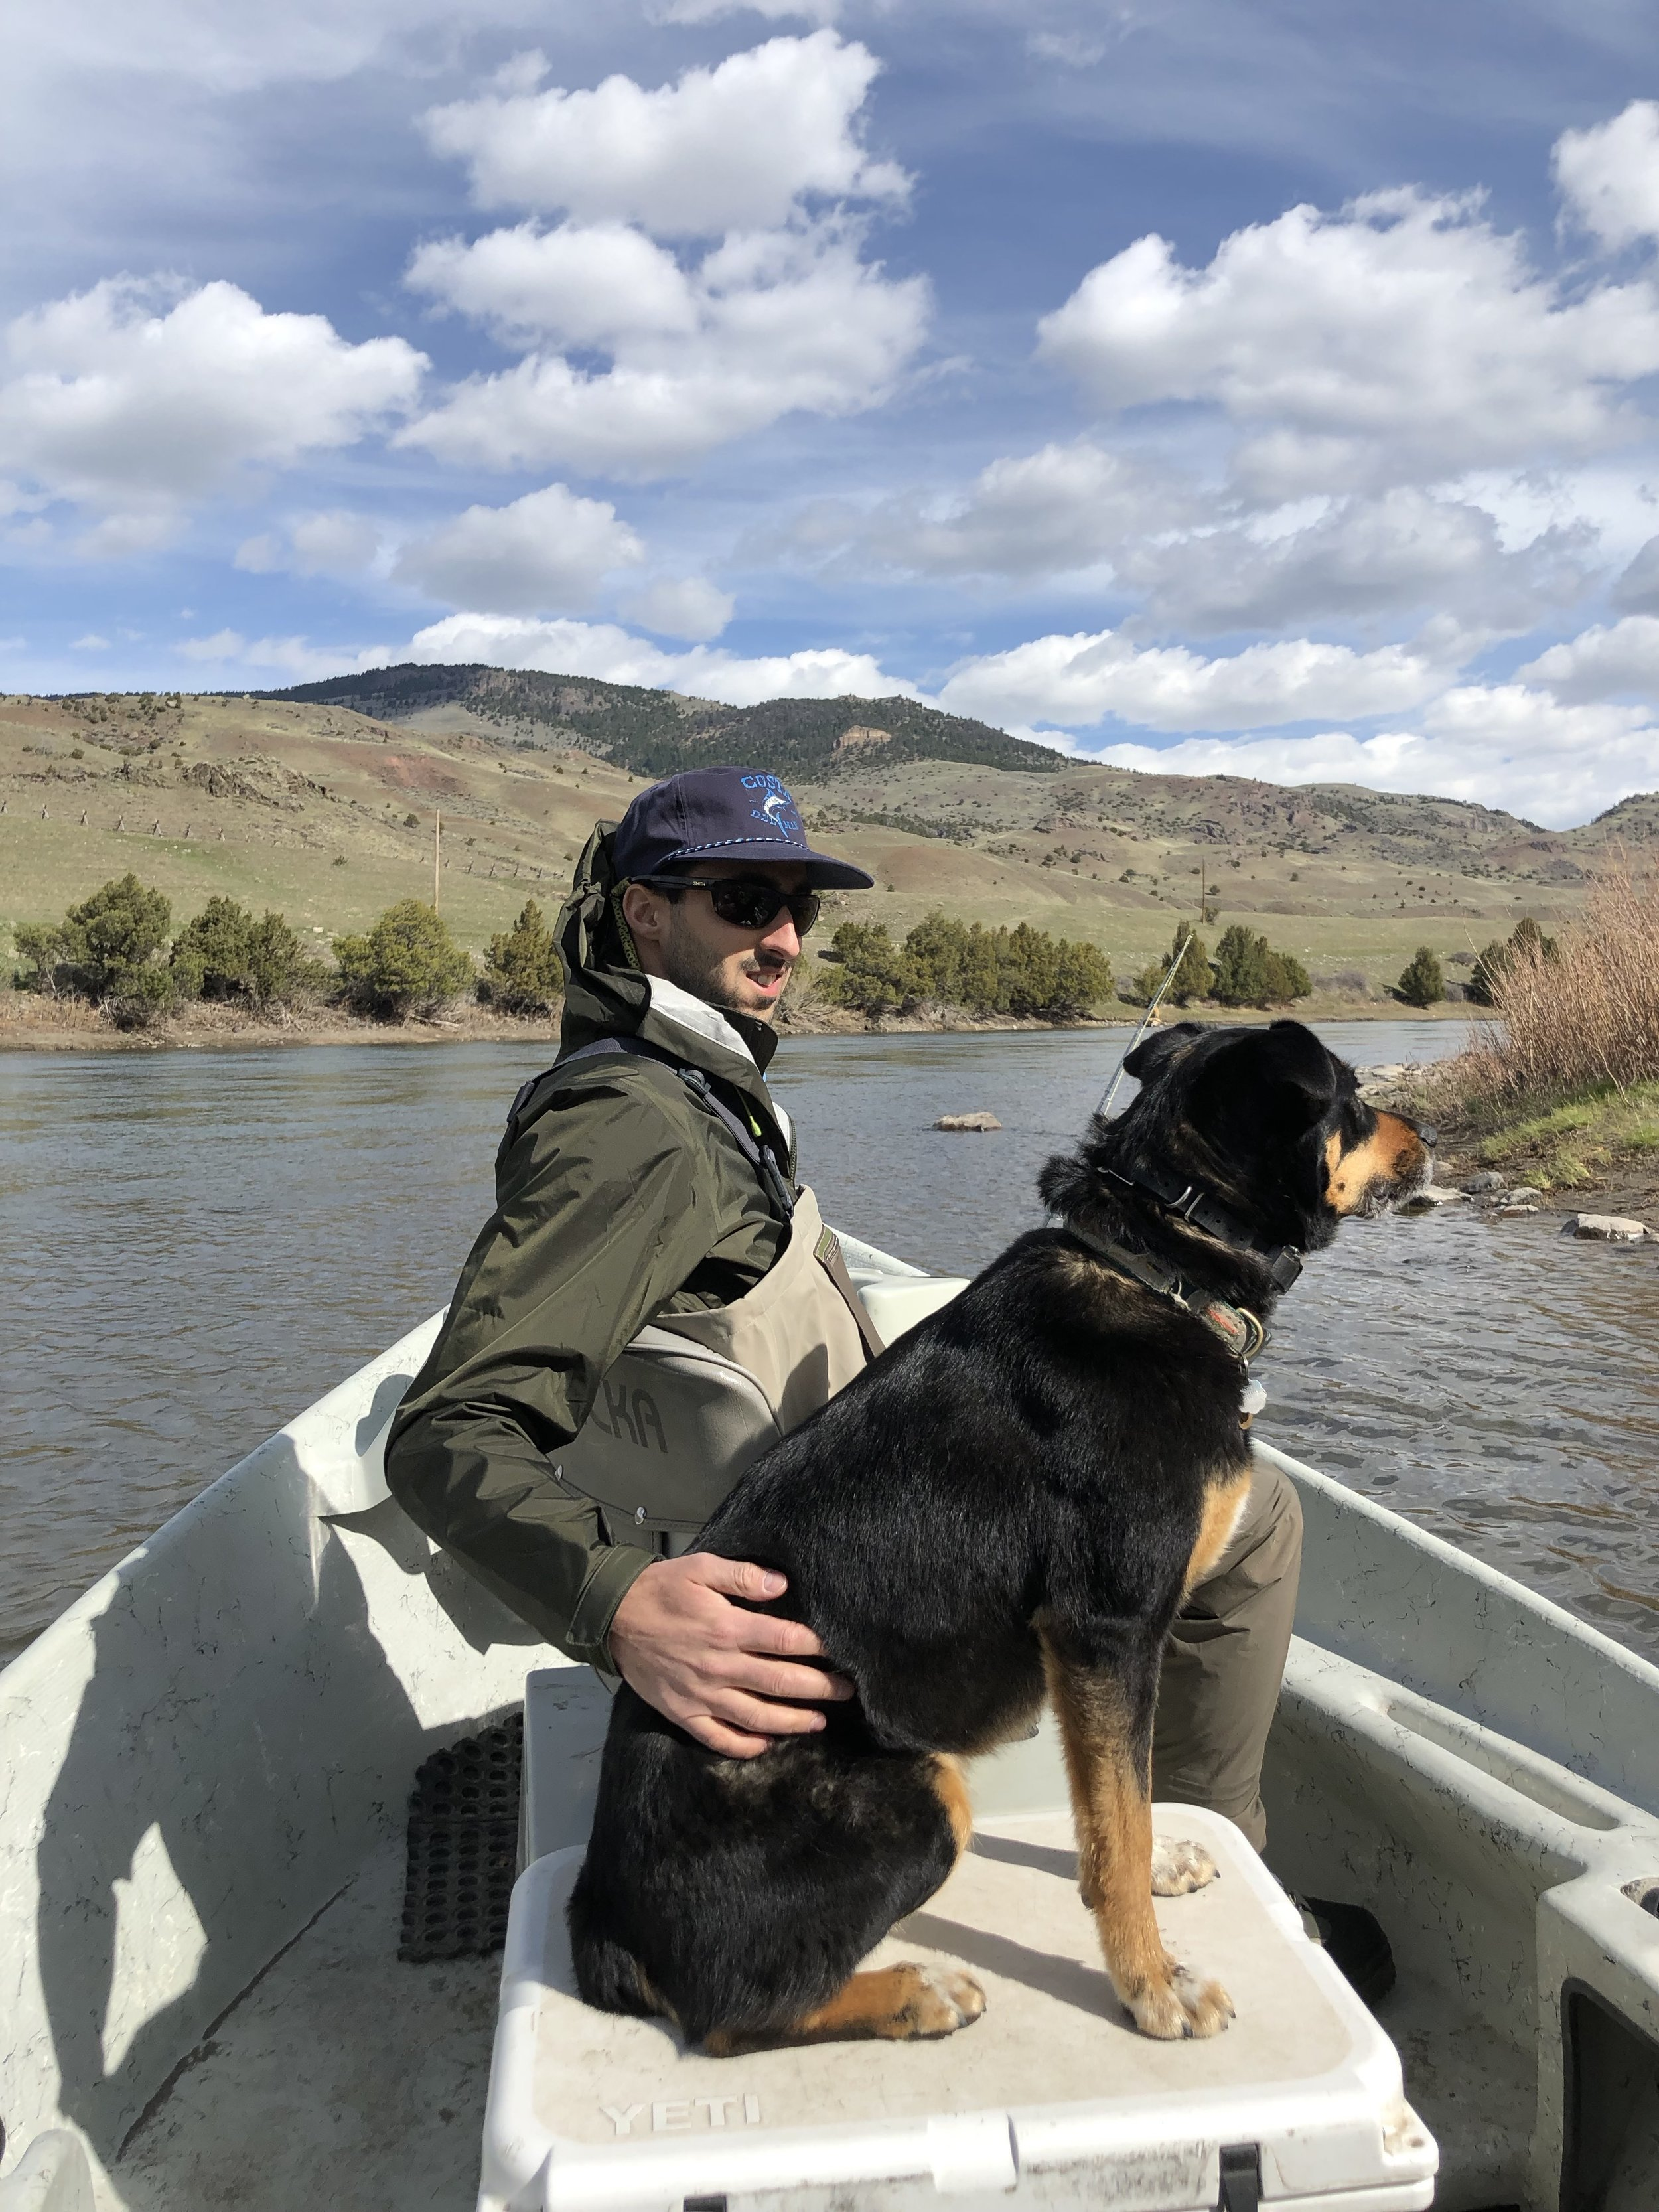 Charles and Lady taking in the Yellowstone River views